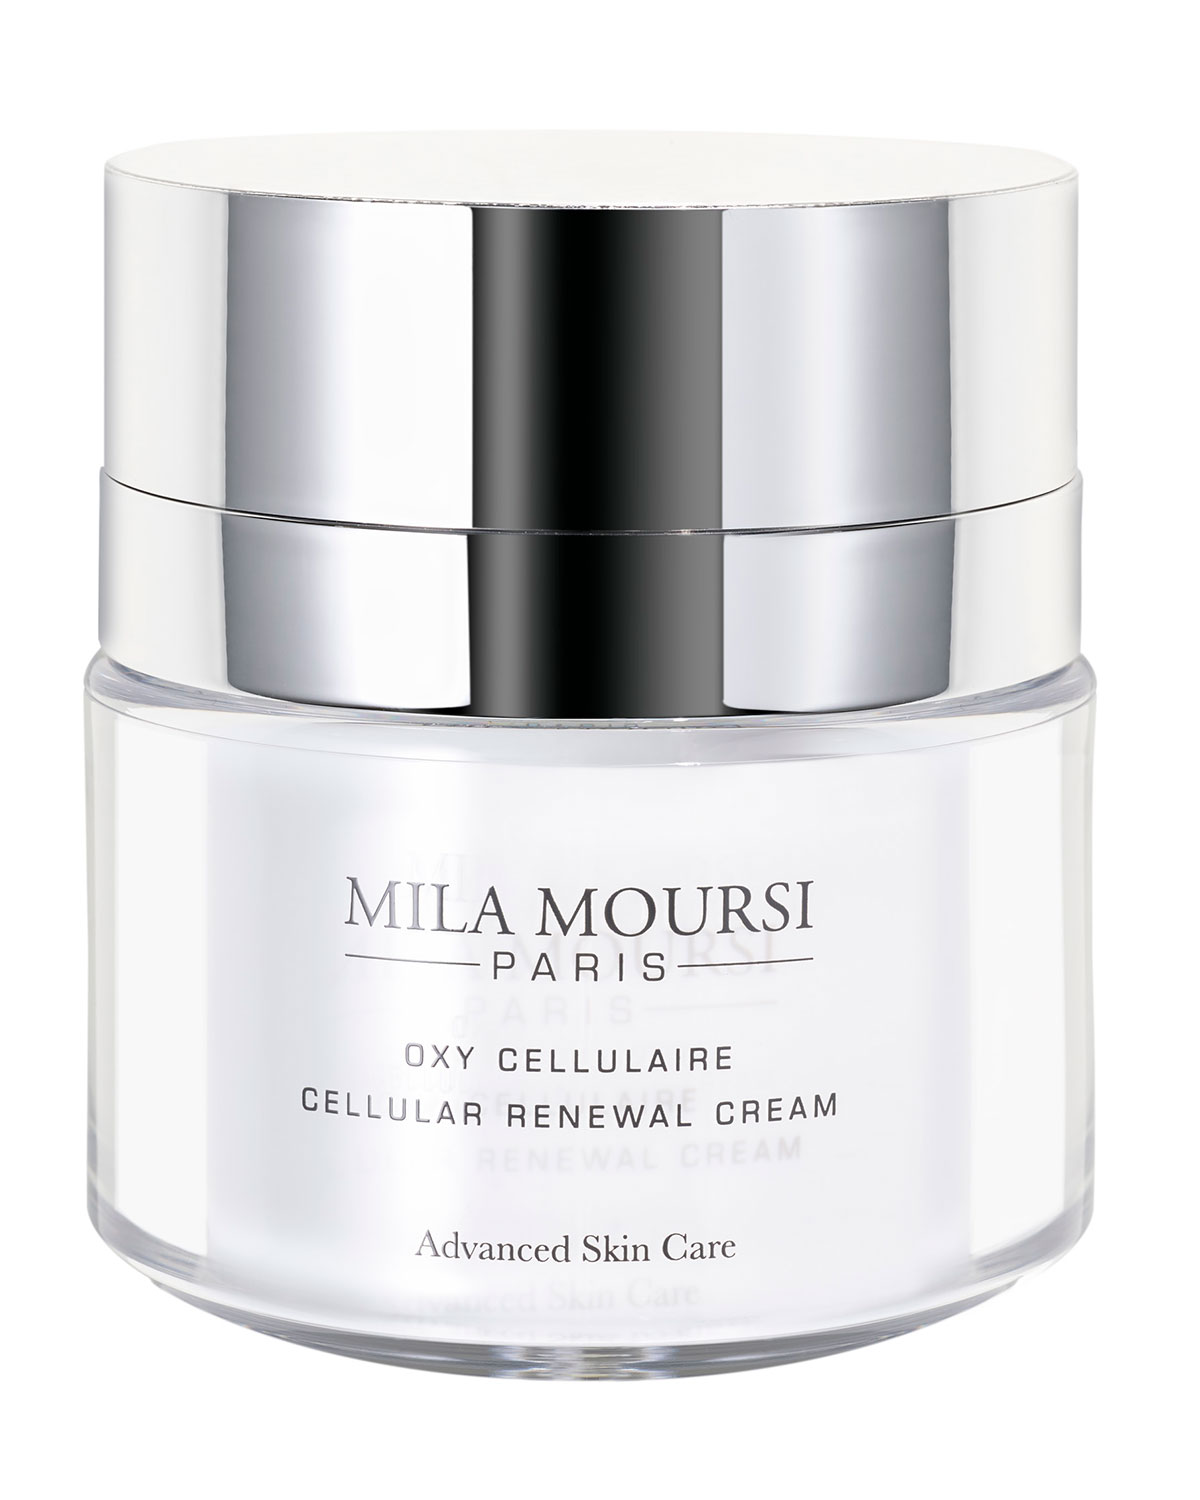 Oxy Cellulaire Cellular Renewal Cream